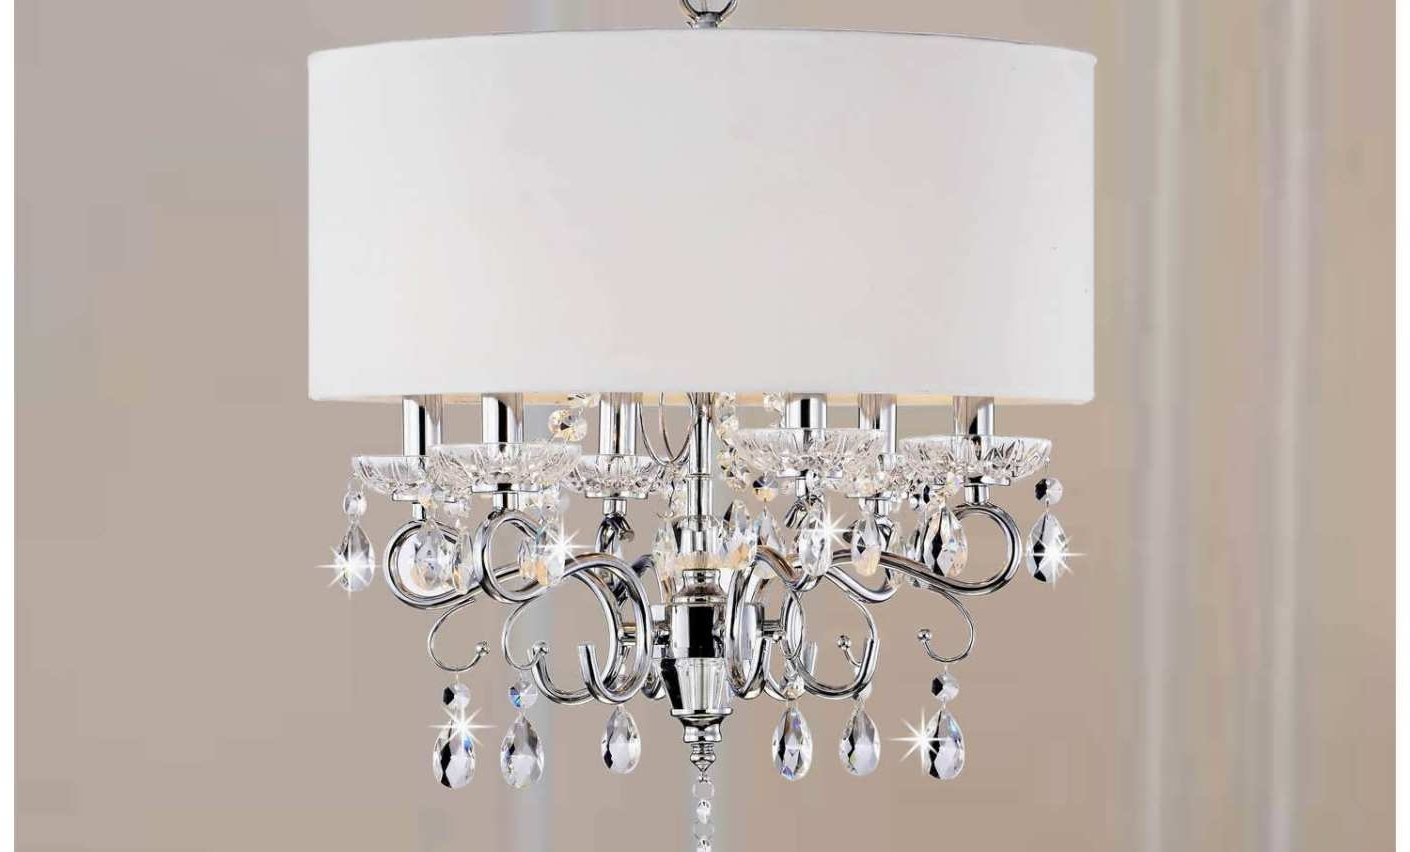 Chandelier : 5 Linen Drum Chandelier Shade Amazing Clip On Drum Throughout Well Liked Clip On Drum Chandelier Shades (View 5 of 20)